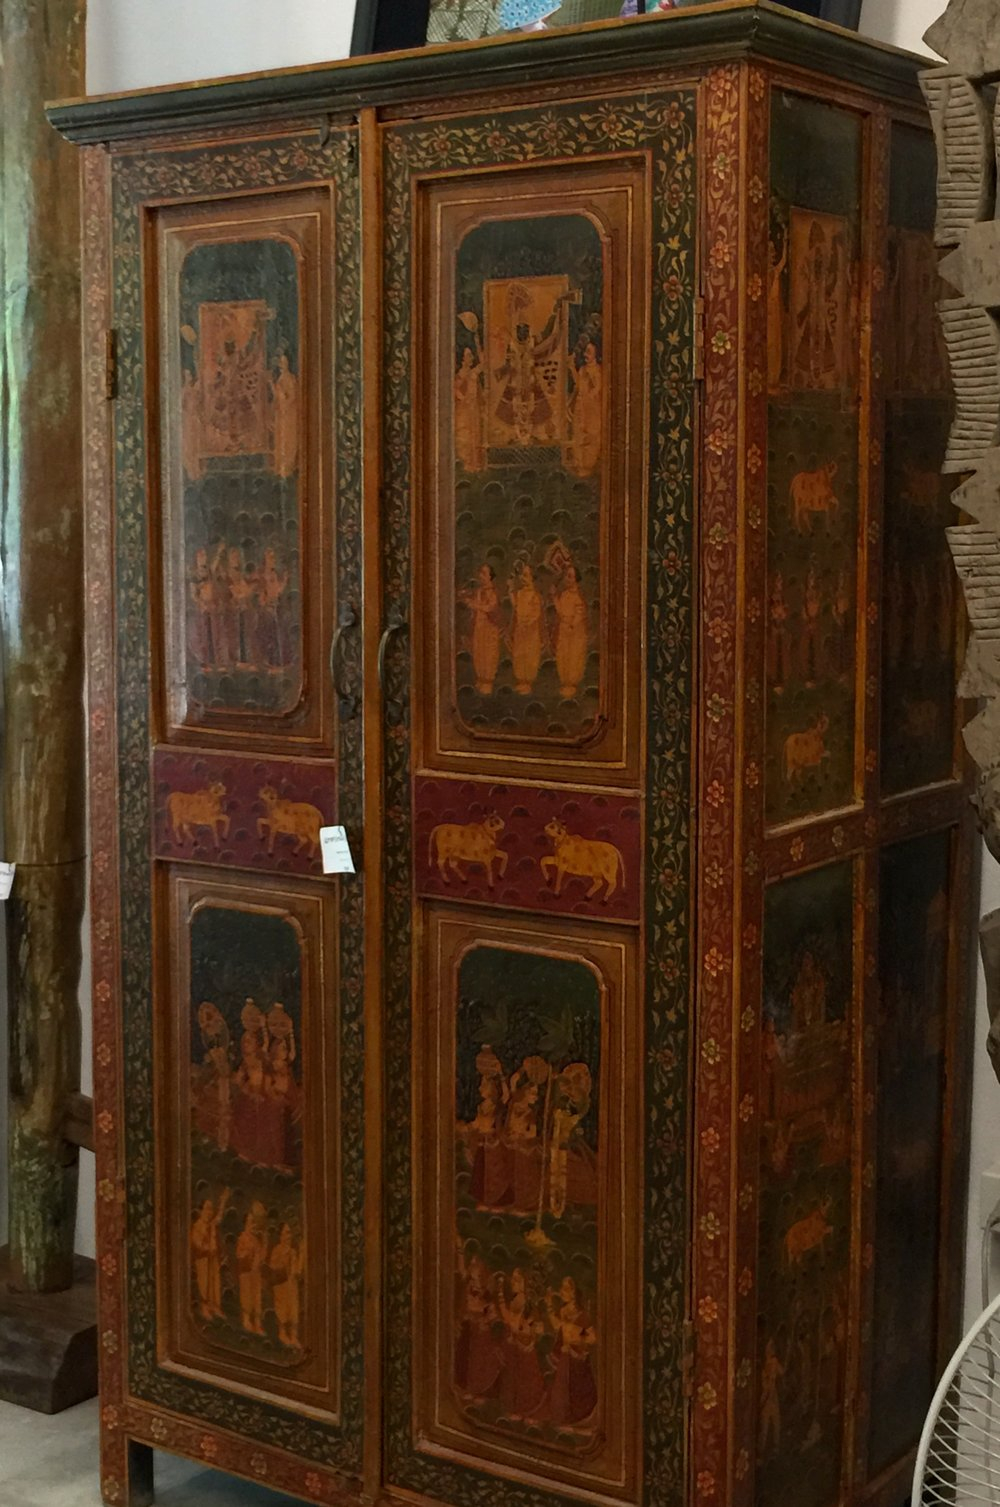 Rajathan Painted Cabinet